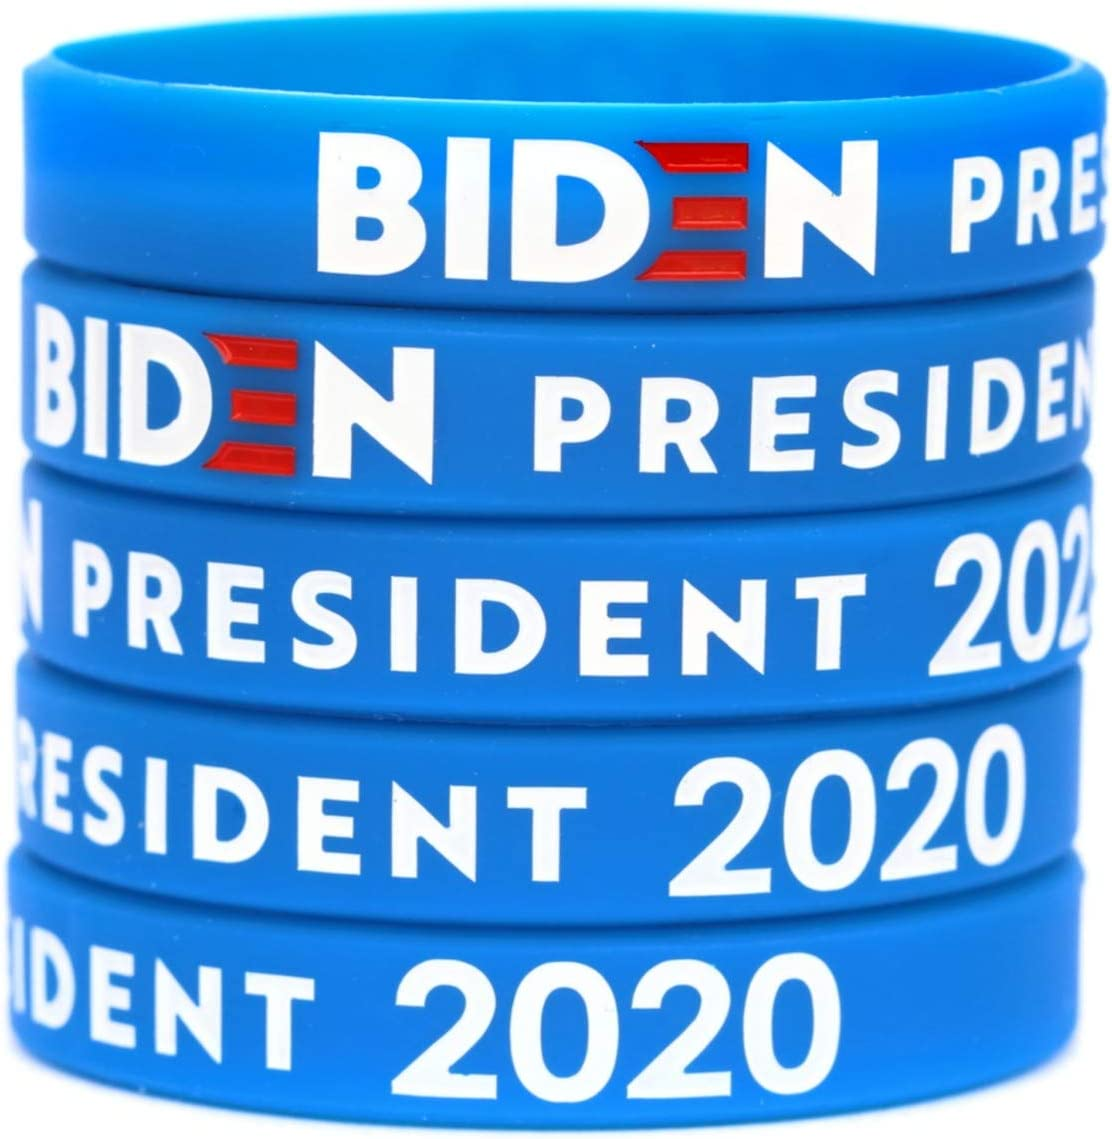 Inspirational Motivational Wristbands Adults Unisex Gifts for Teens Men Women Boy Girl Greatingreat 8 Biden for Present 2020-Restore The Soul of This Nation-for President 2020 Silicone Bracelets